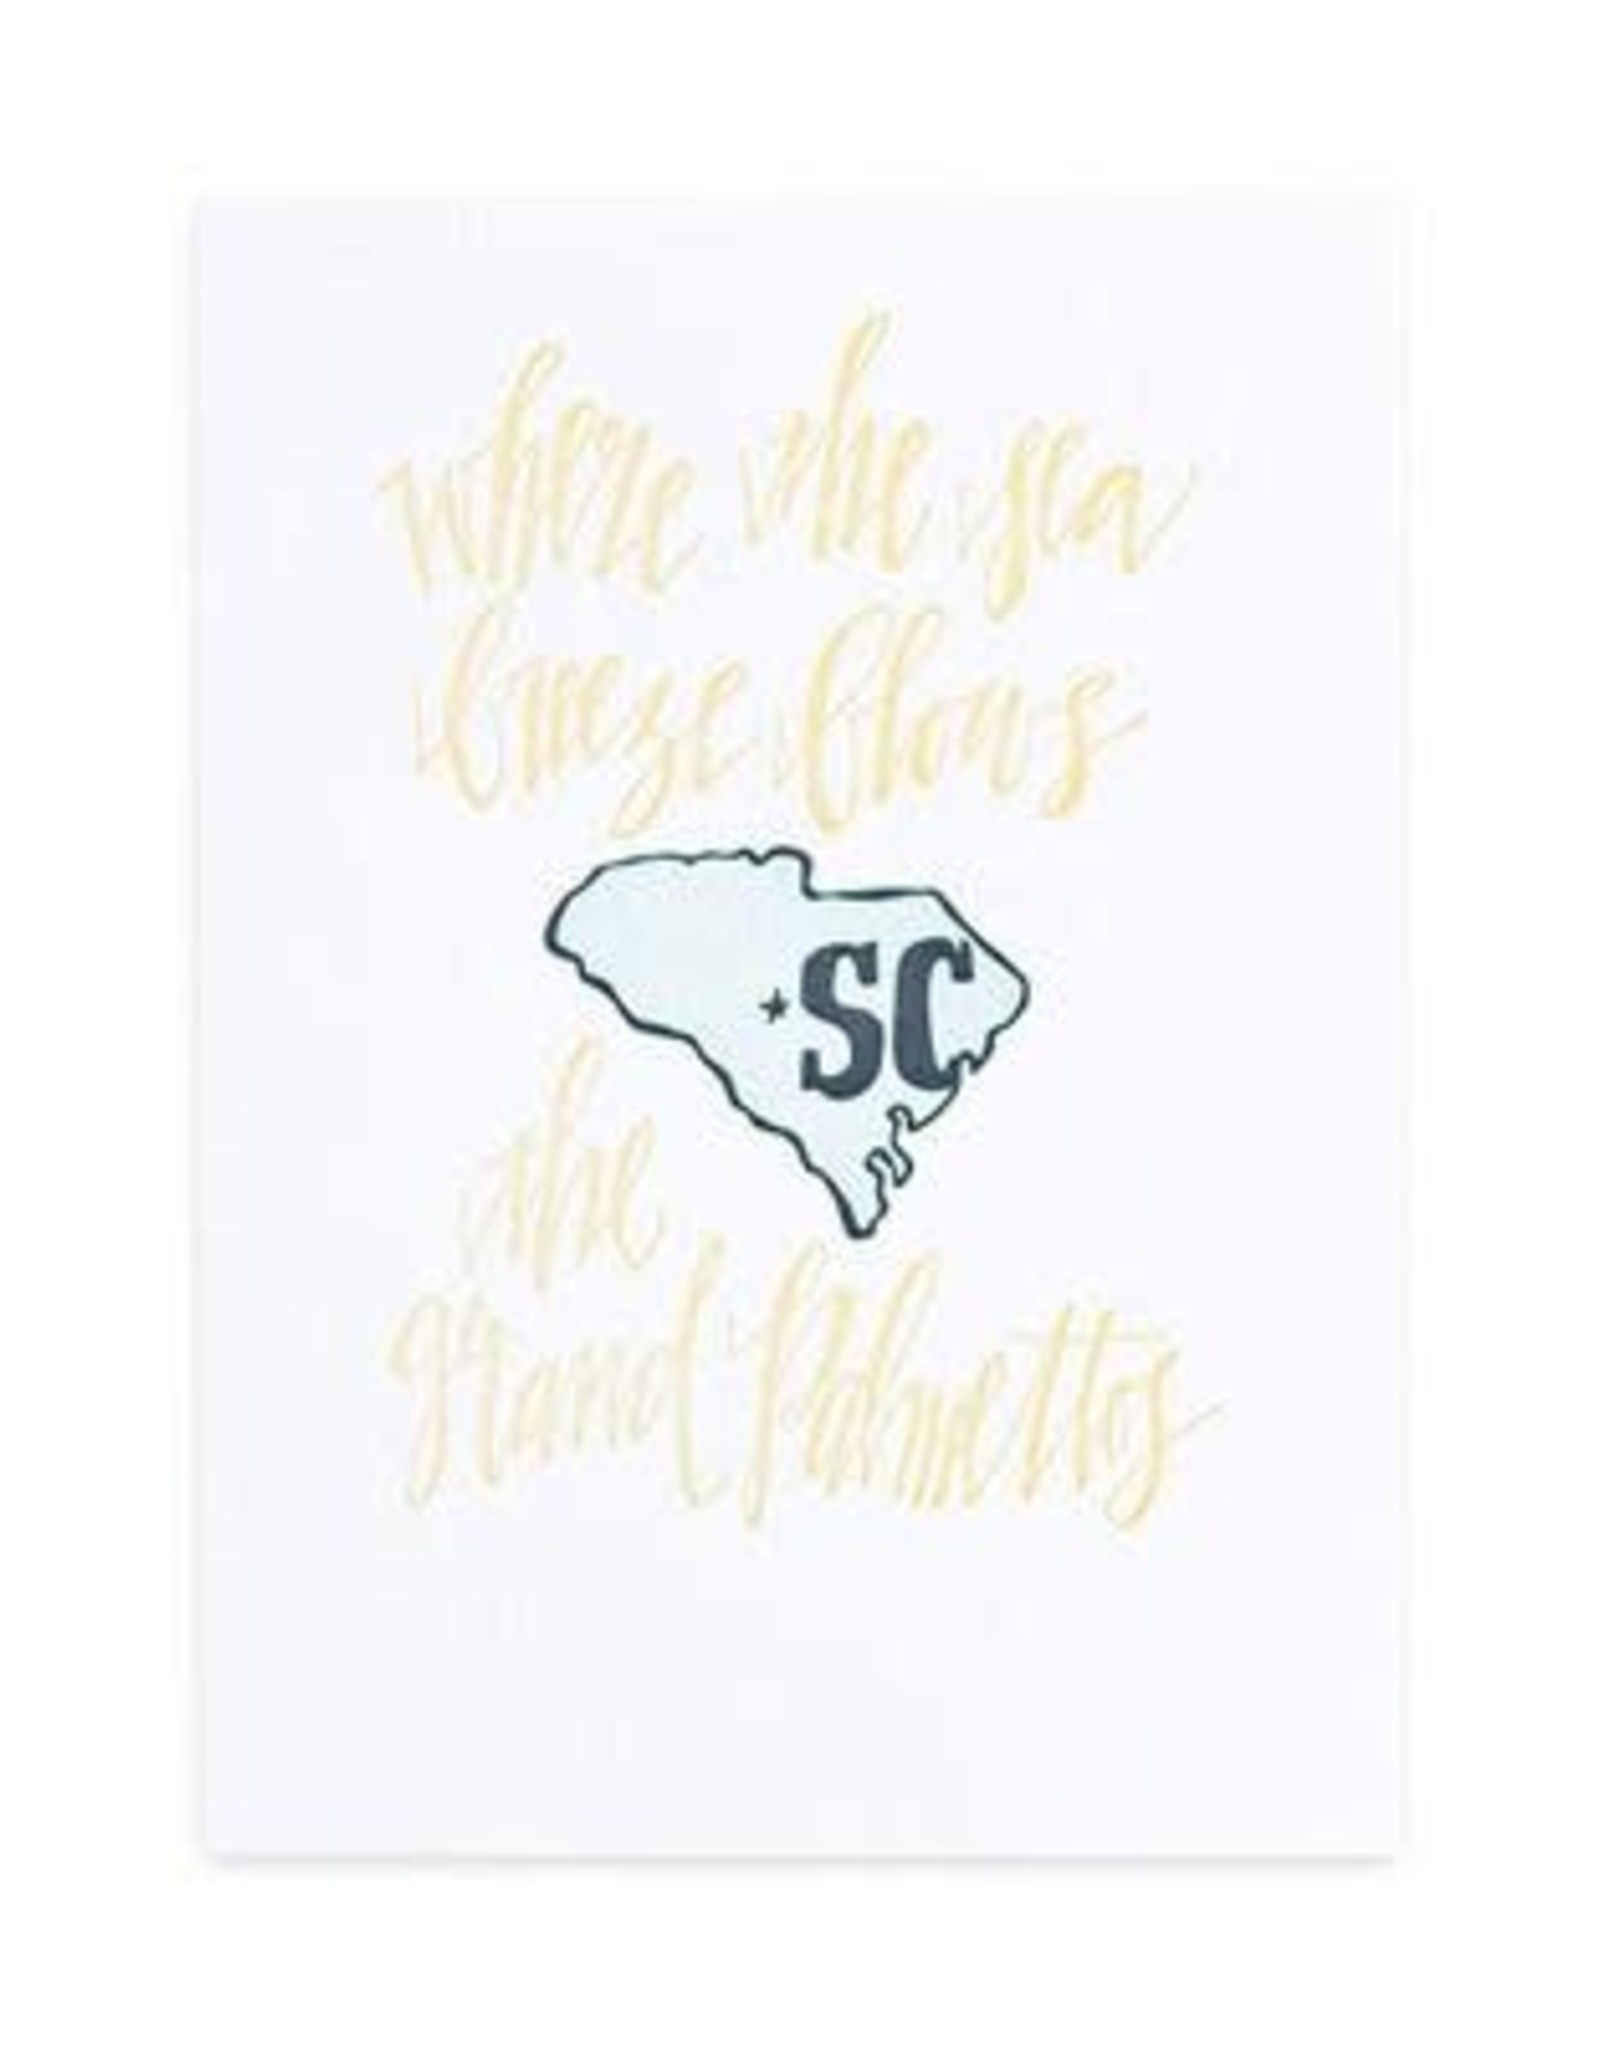 South Carolina Letterpress Print